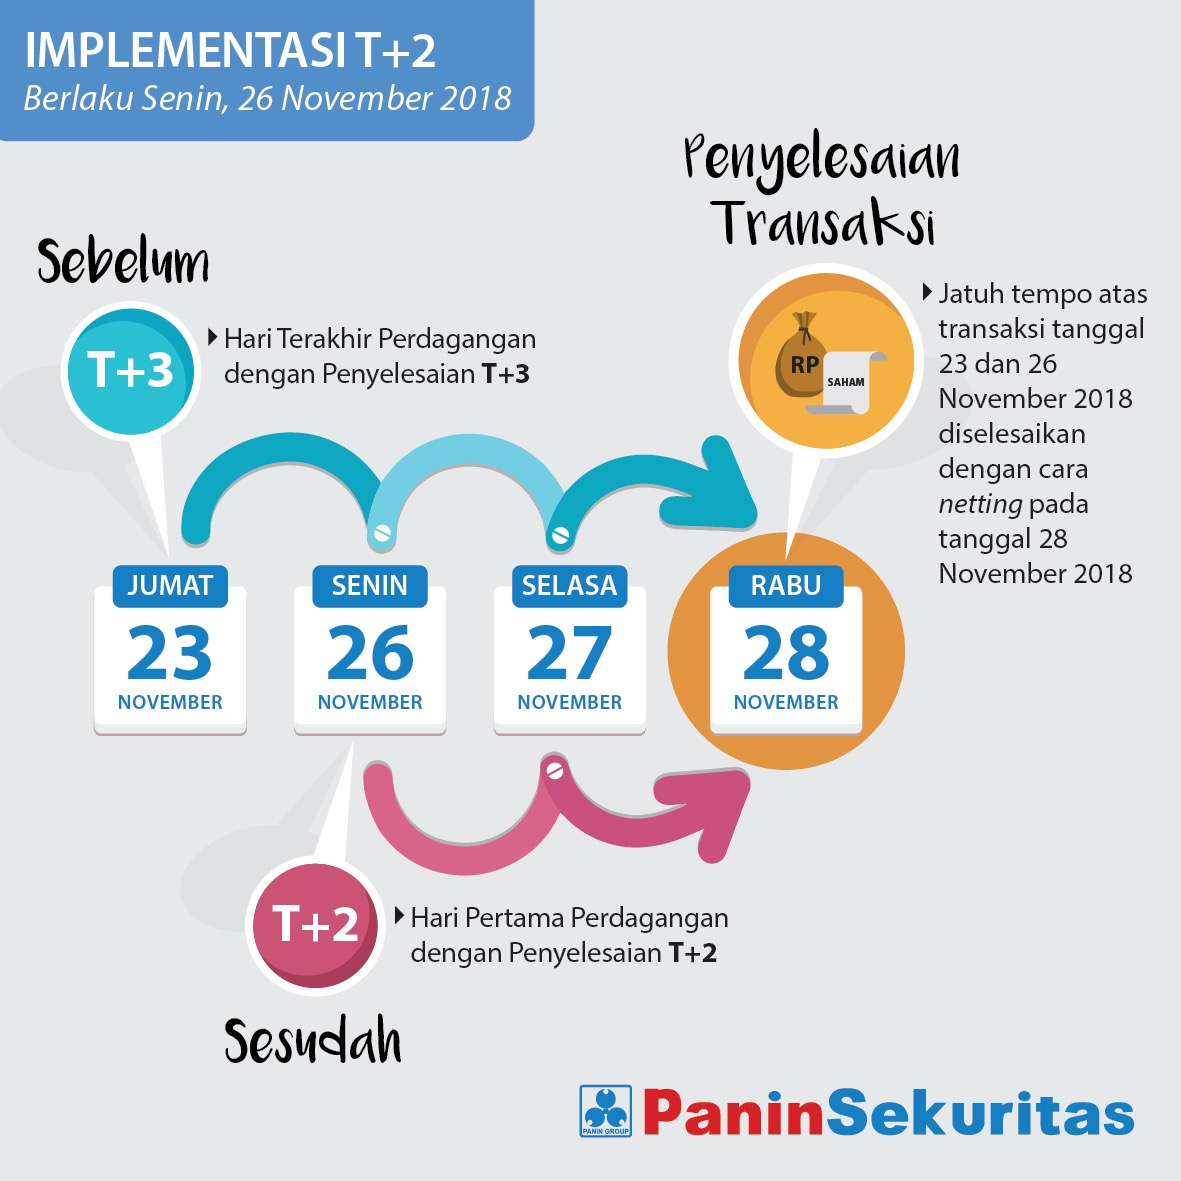 Implementasi T+2